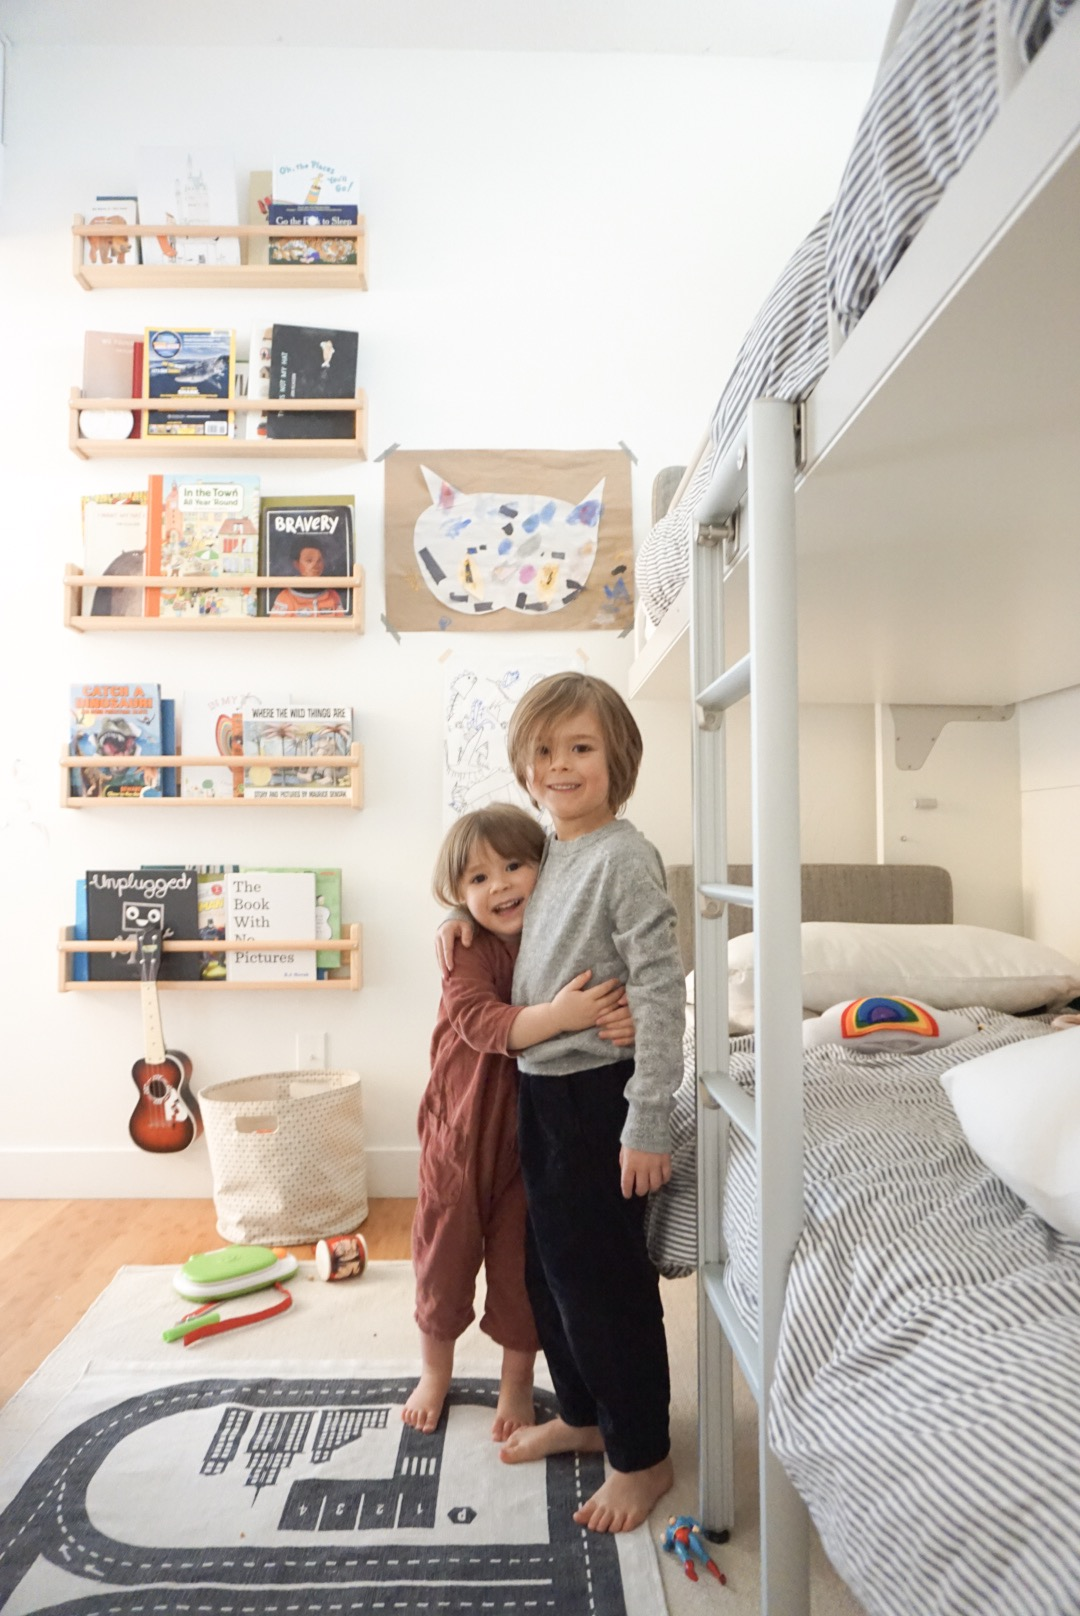 The kids in their small shared bedroom standing beside their wall bunk beds with their library carrying up the wall.